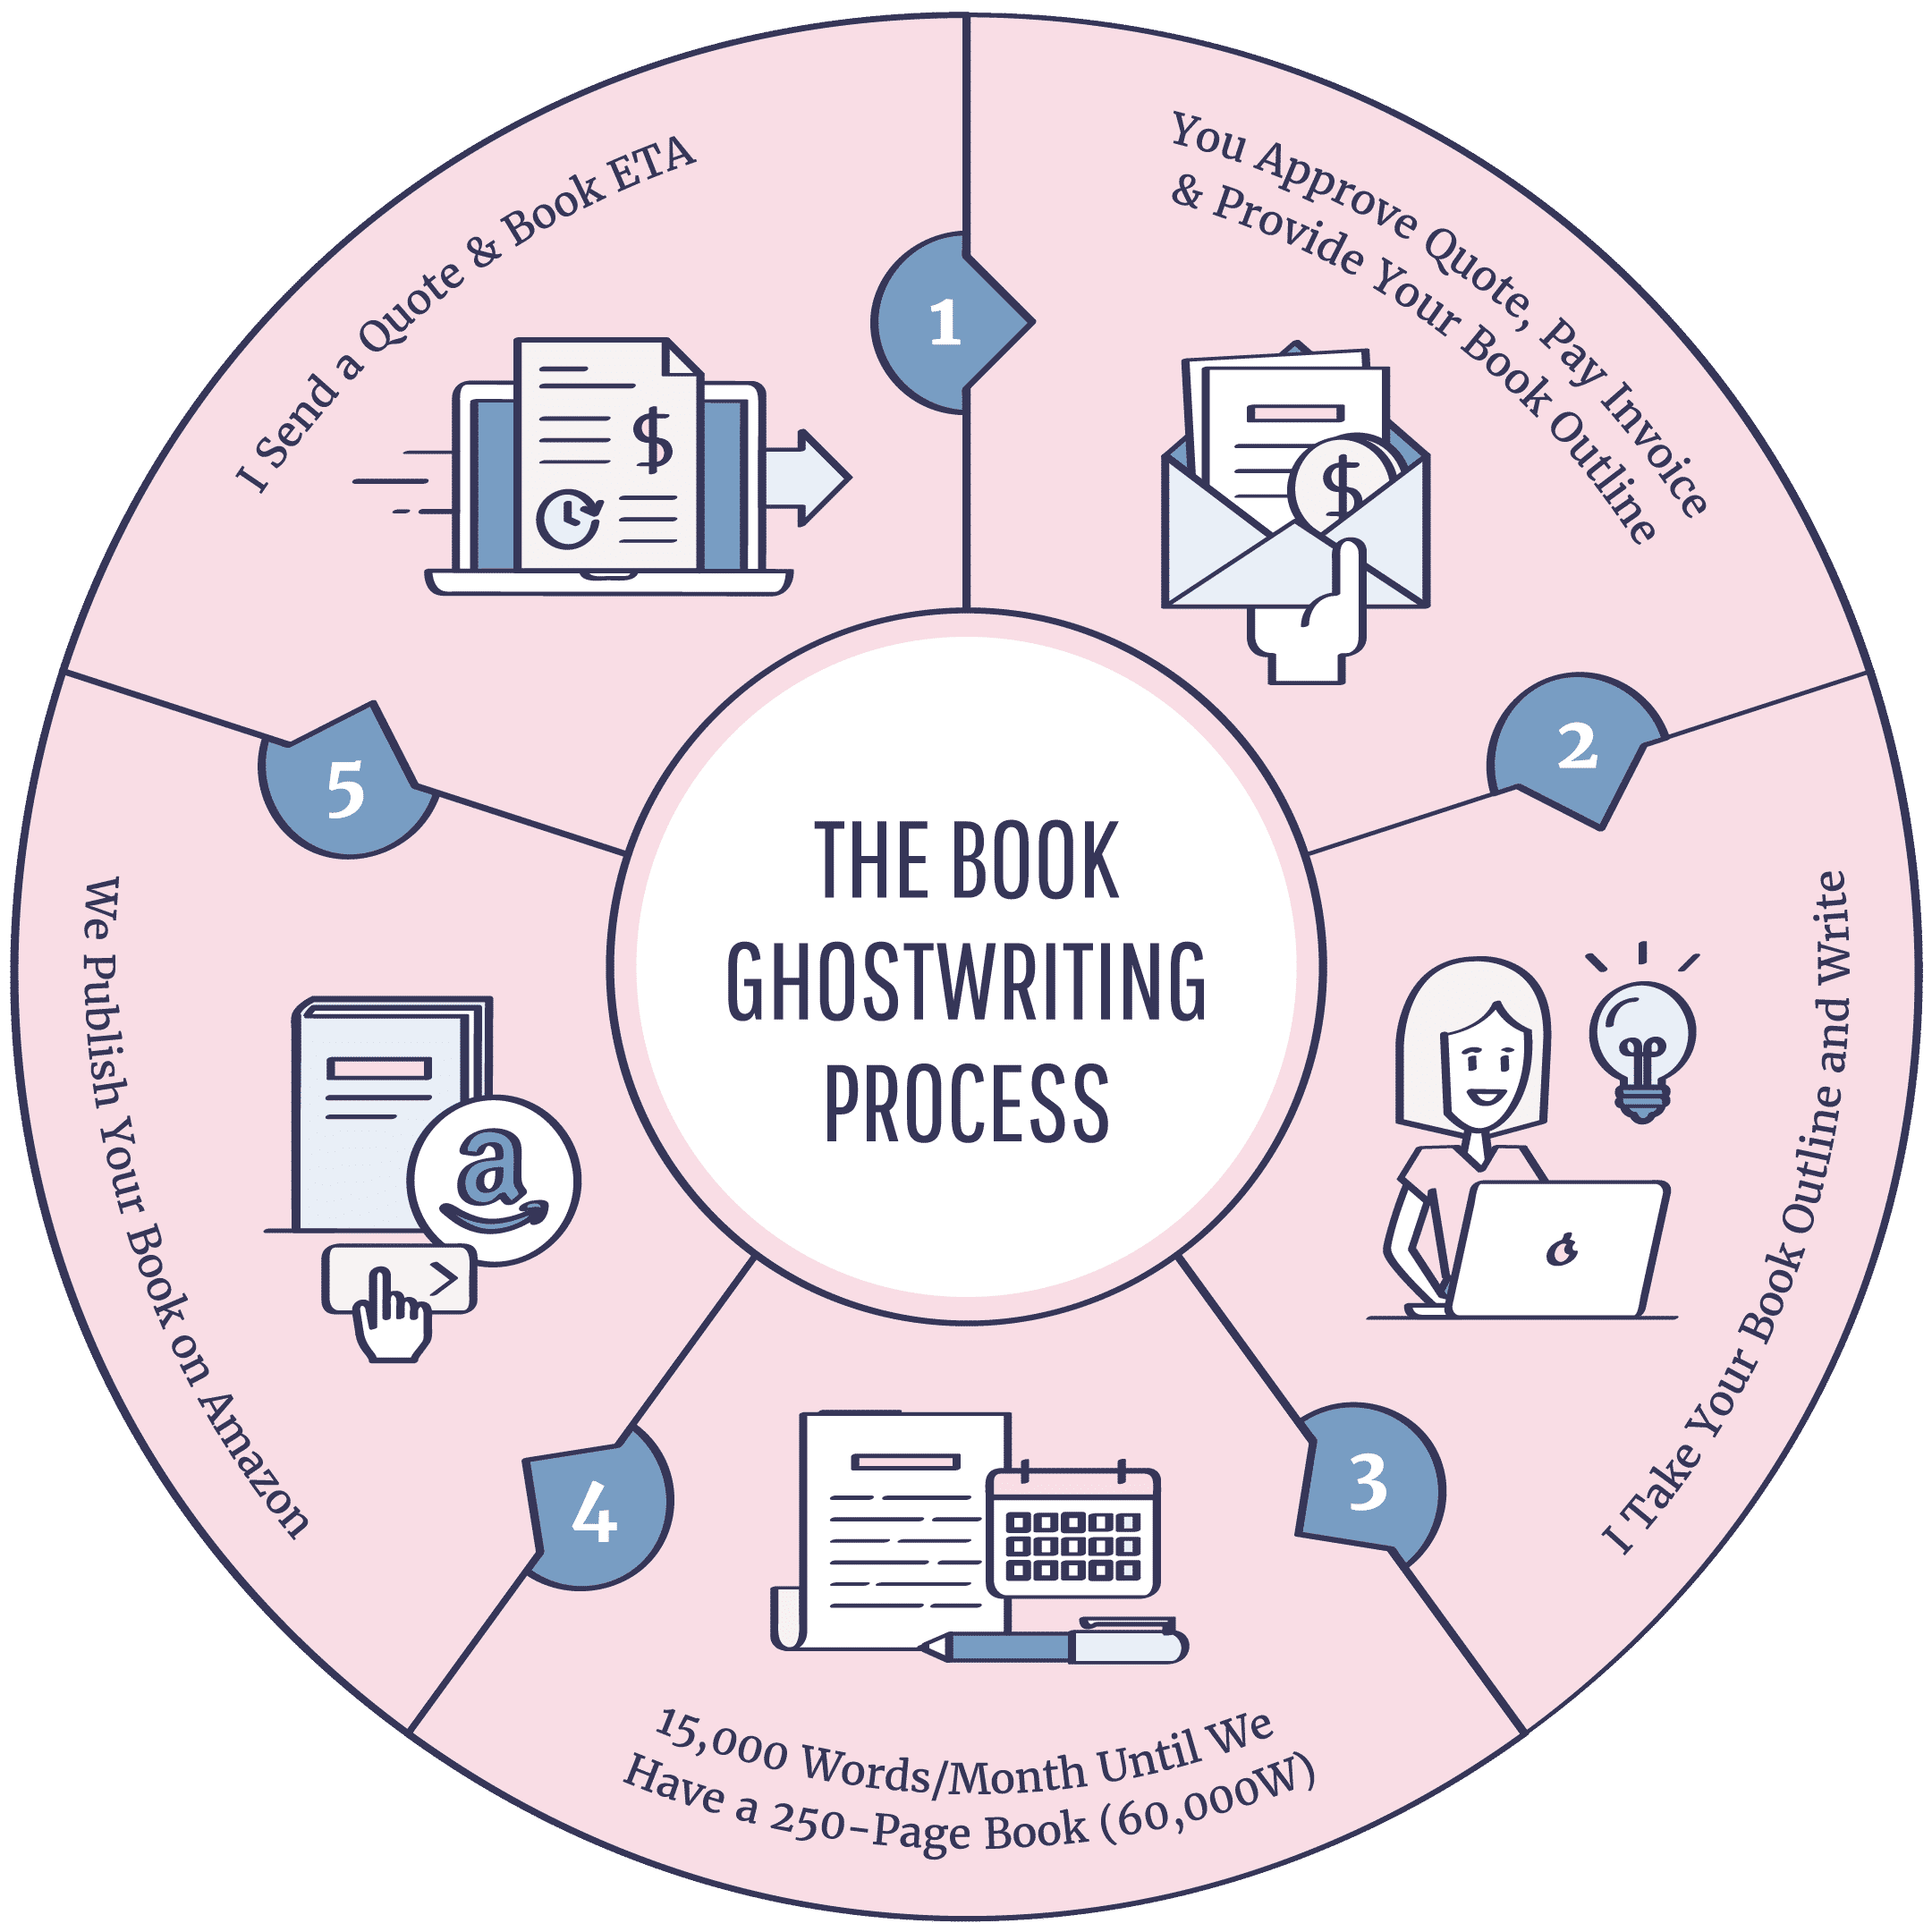 the book ghostwriting process in 5 steps